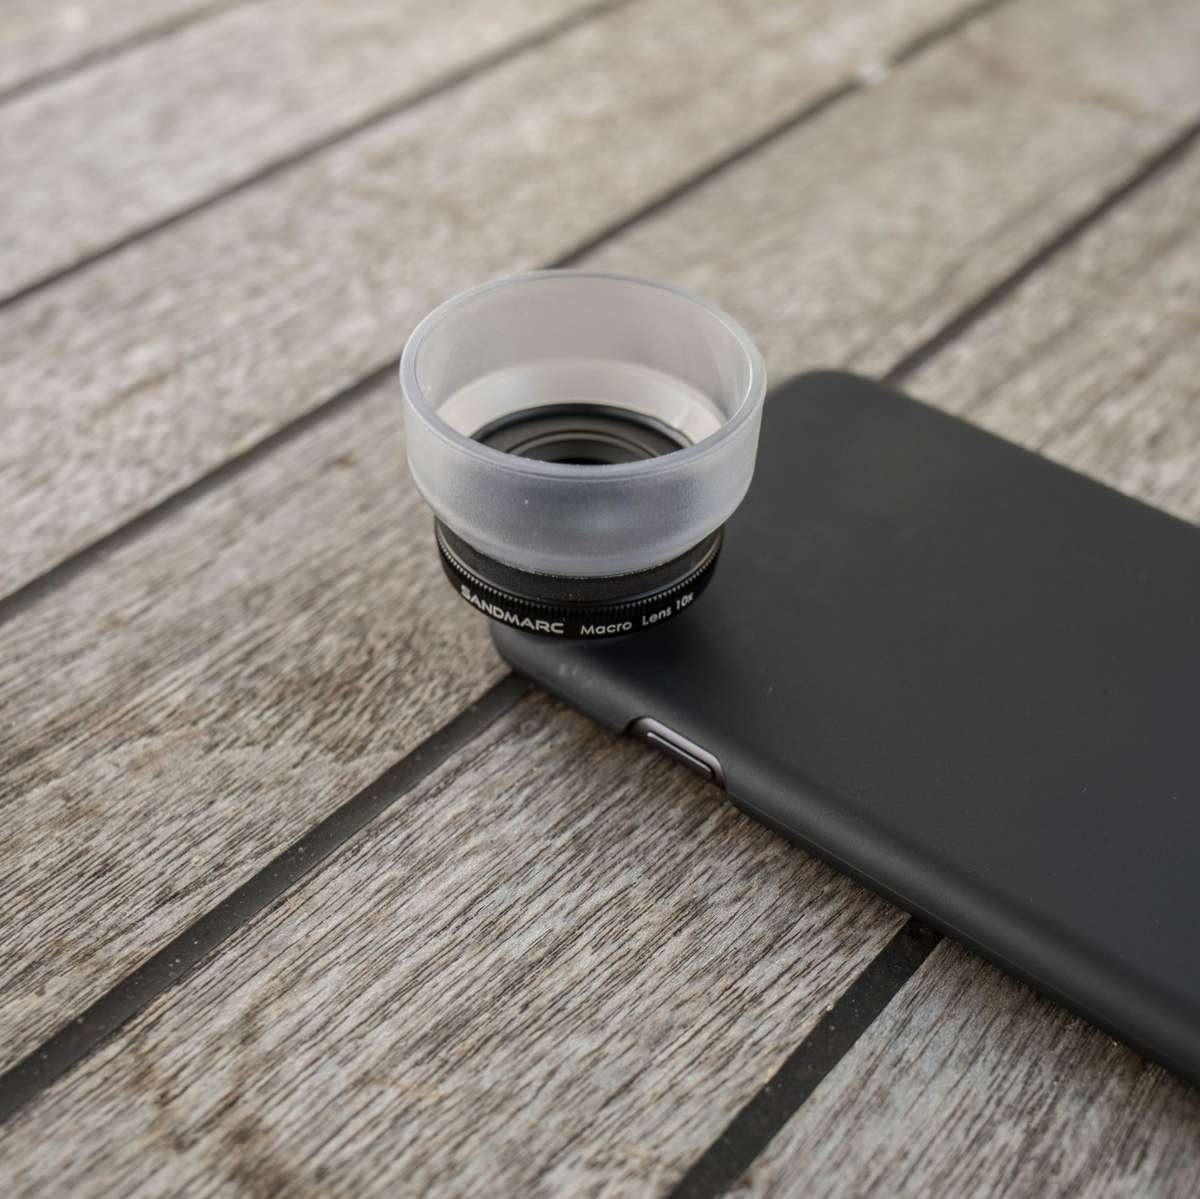 macro lens attachment for iphone